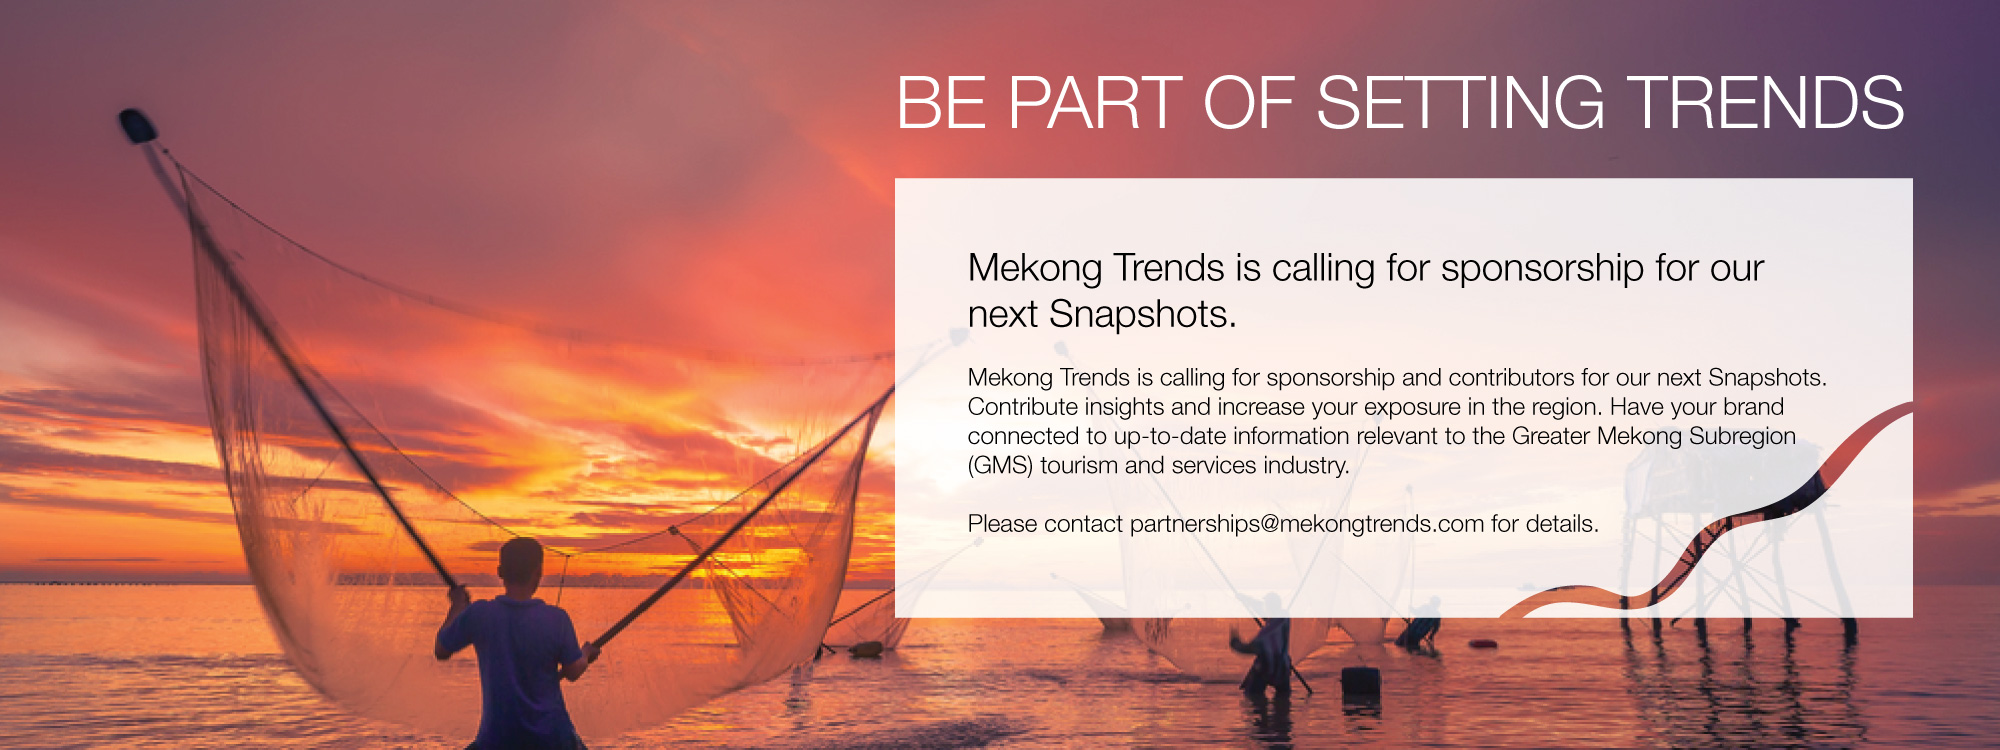 Mekong Trends - Call for Sponsorship